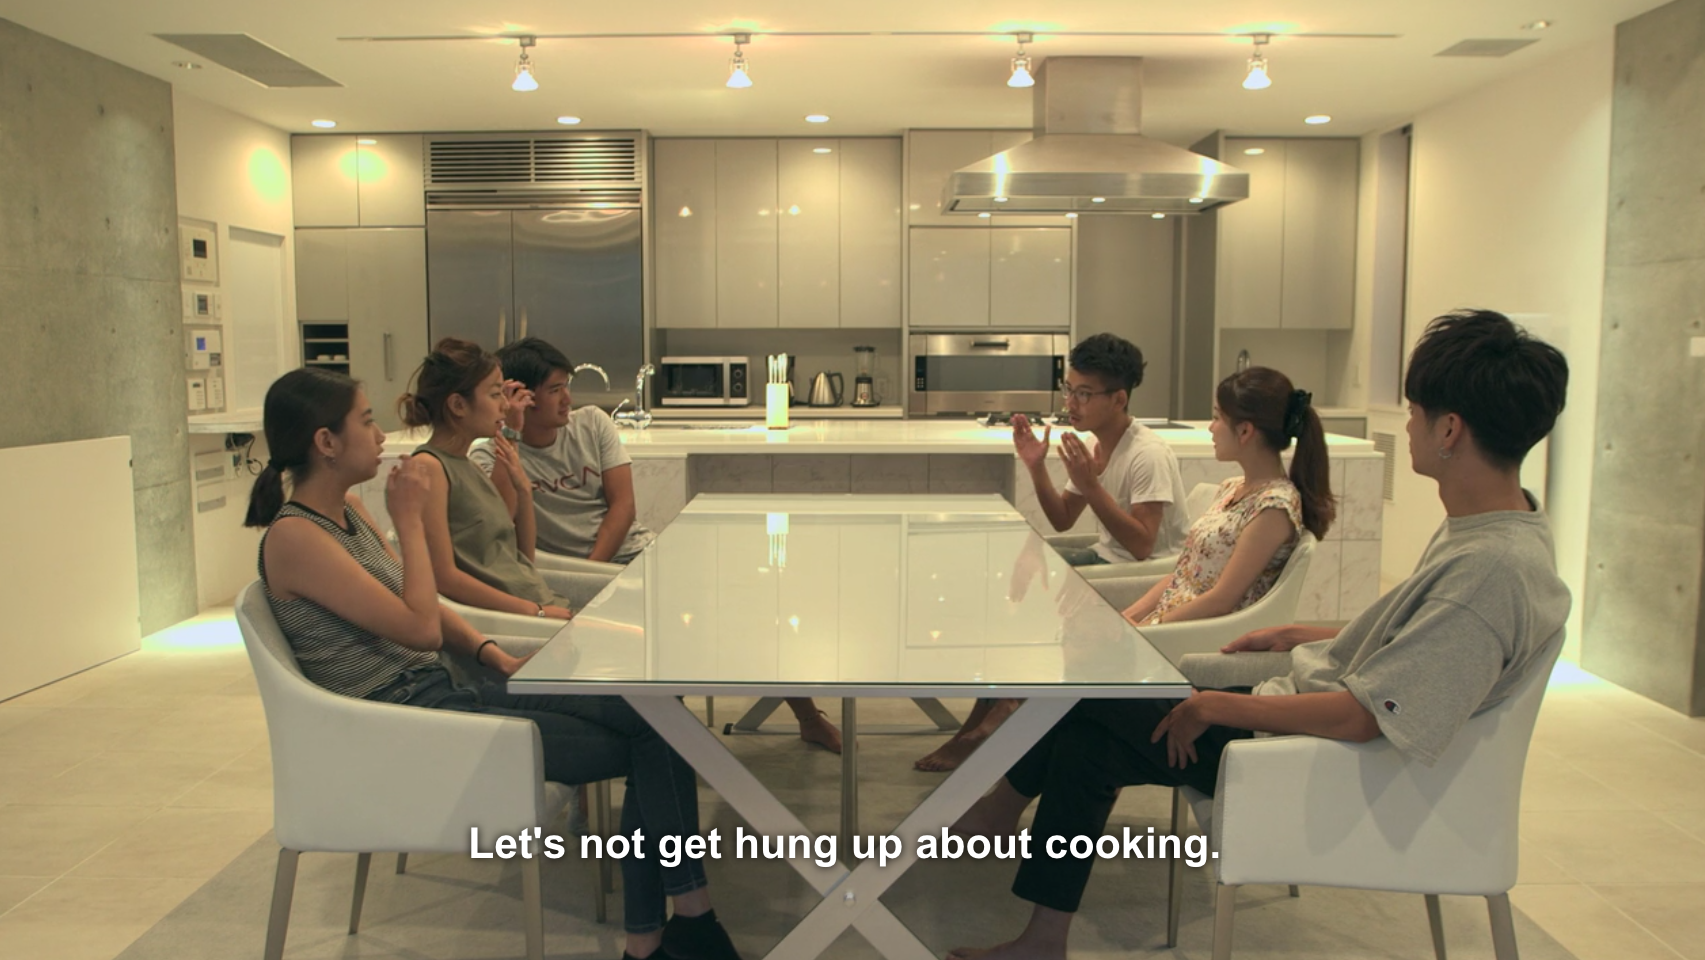 terrace house fixes what s broken in reality tv polygon